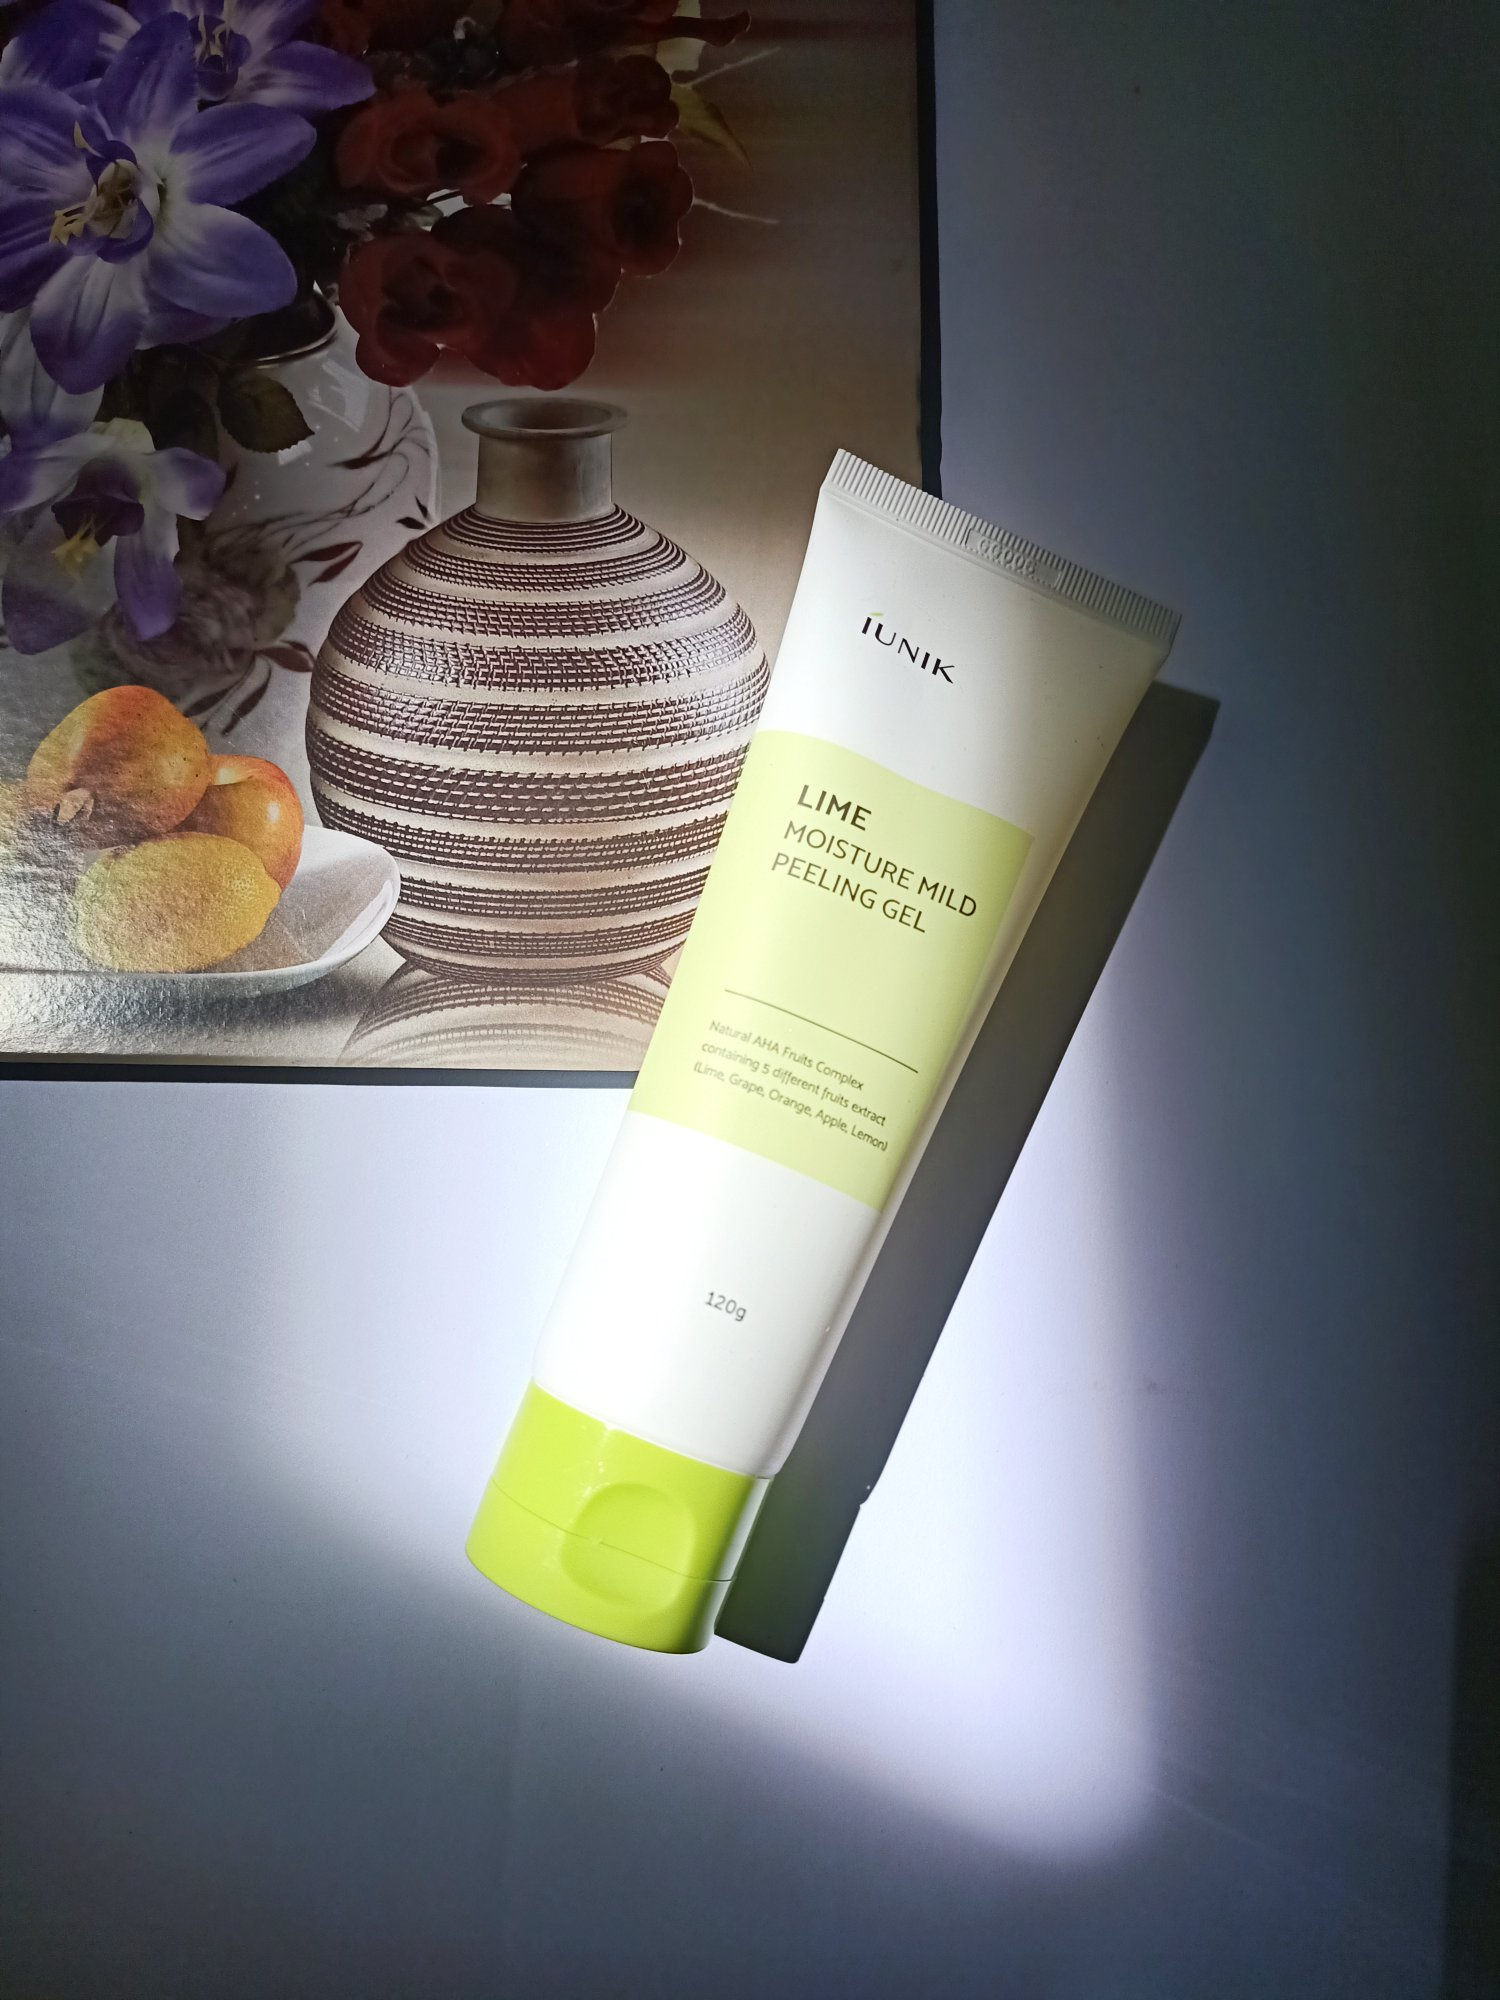 iUNIK Lime Moisture Mild Peeling Gel Review